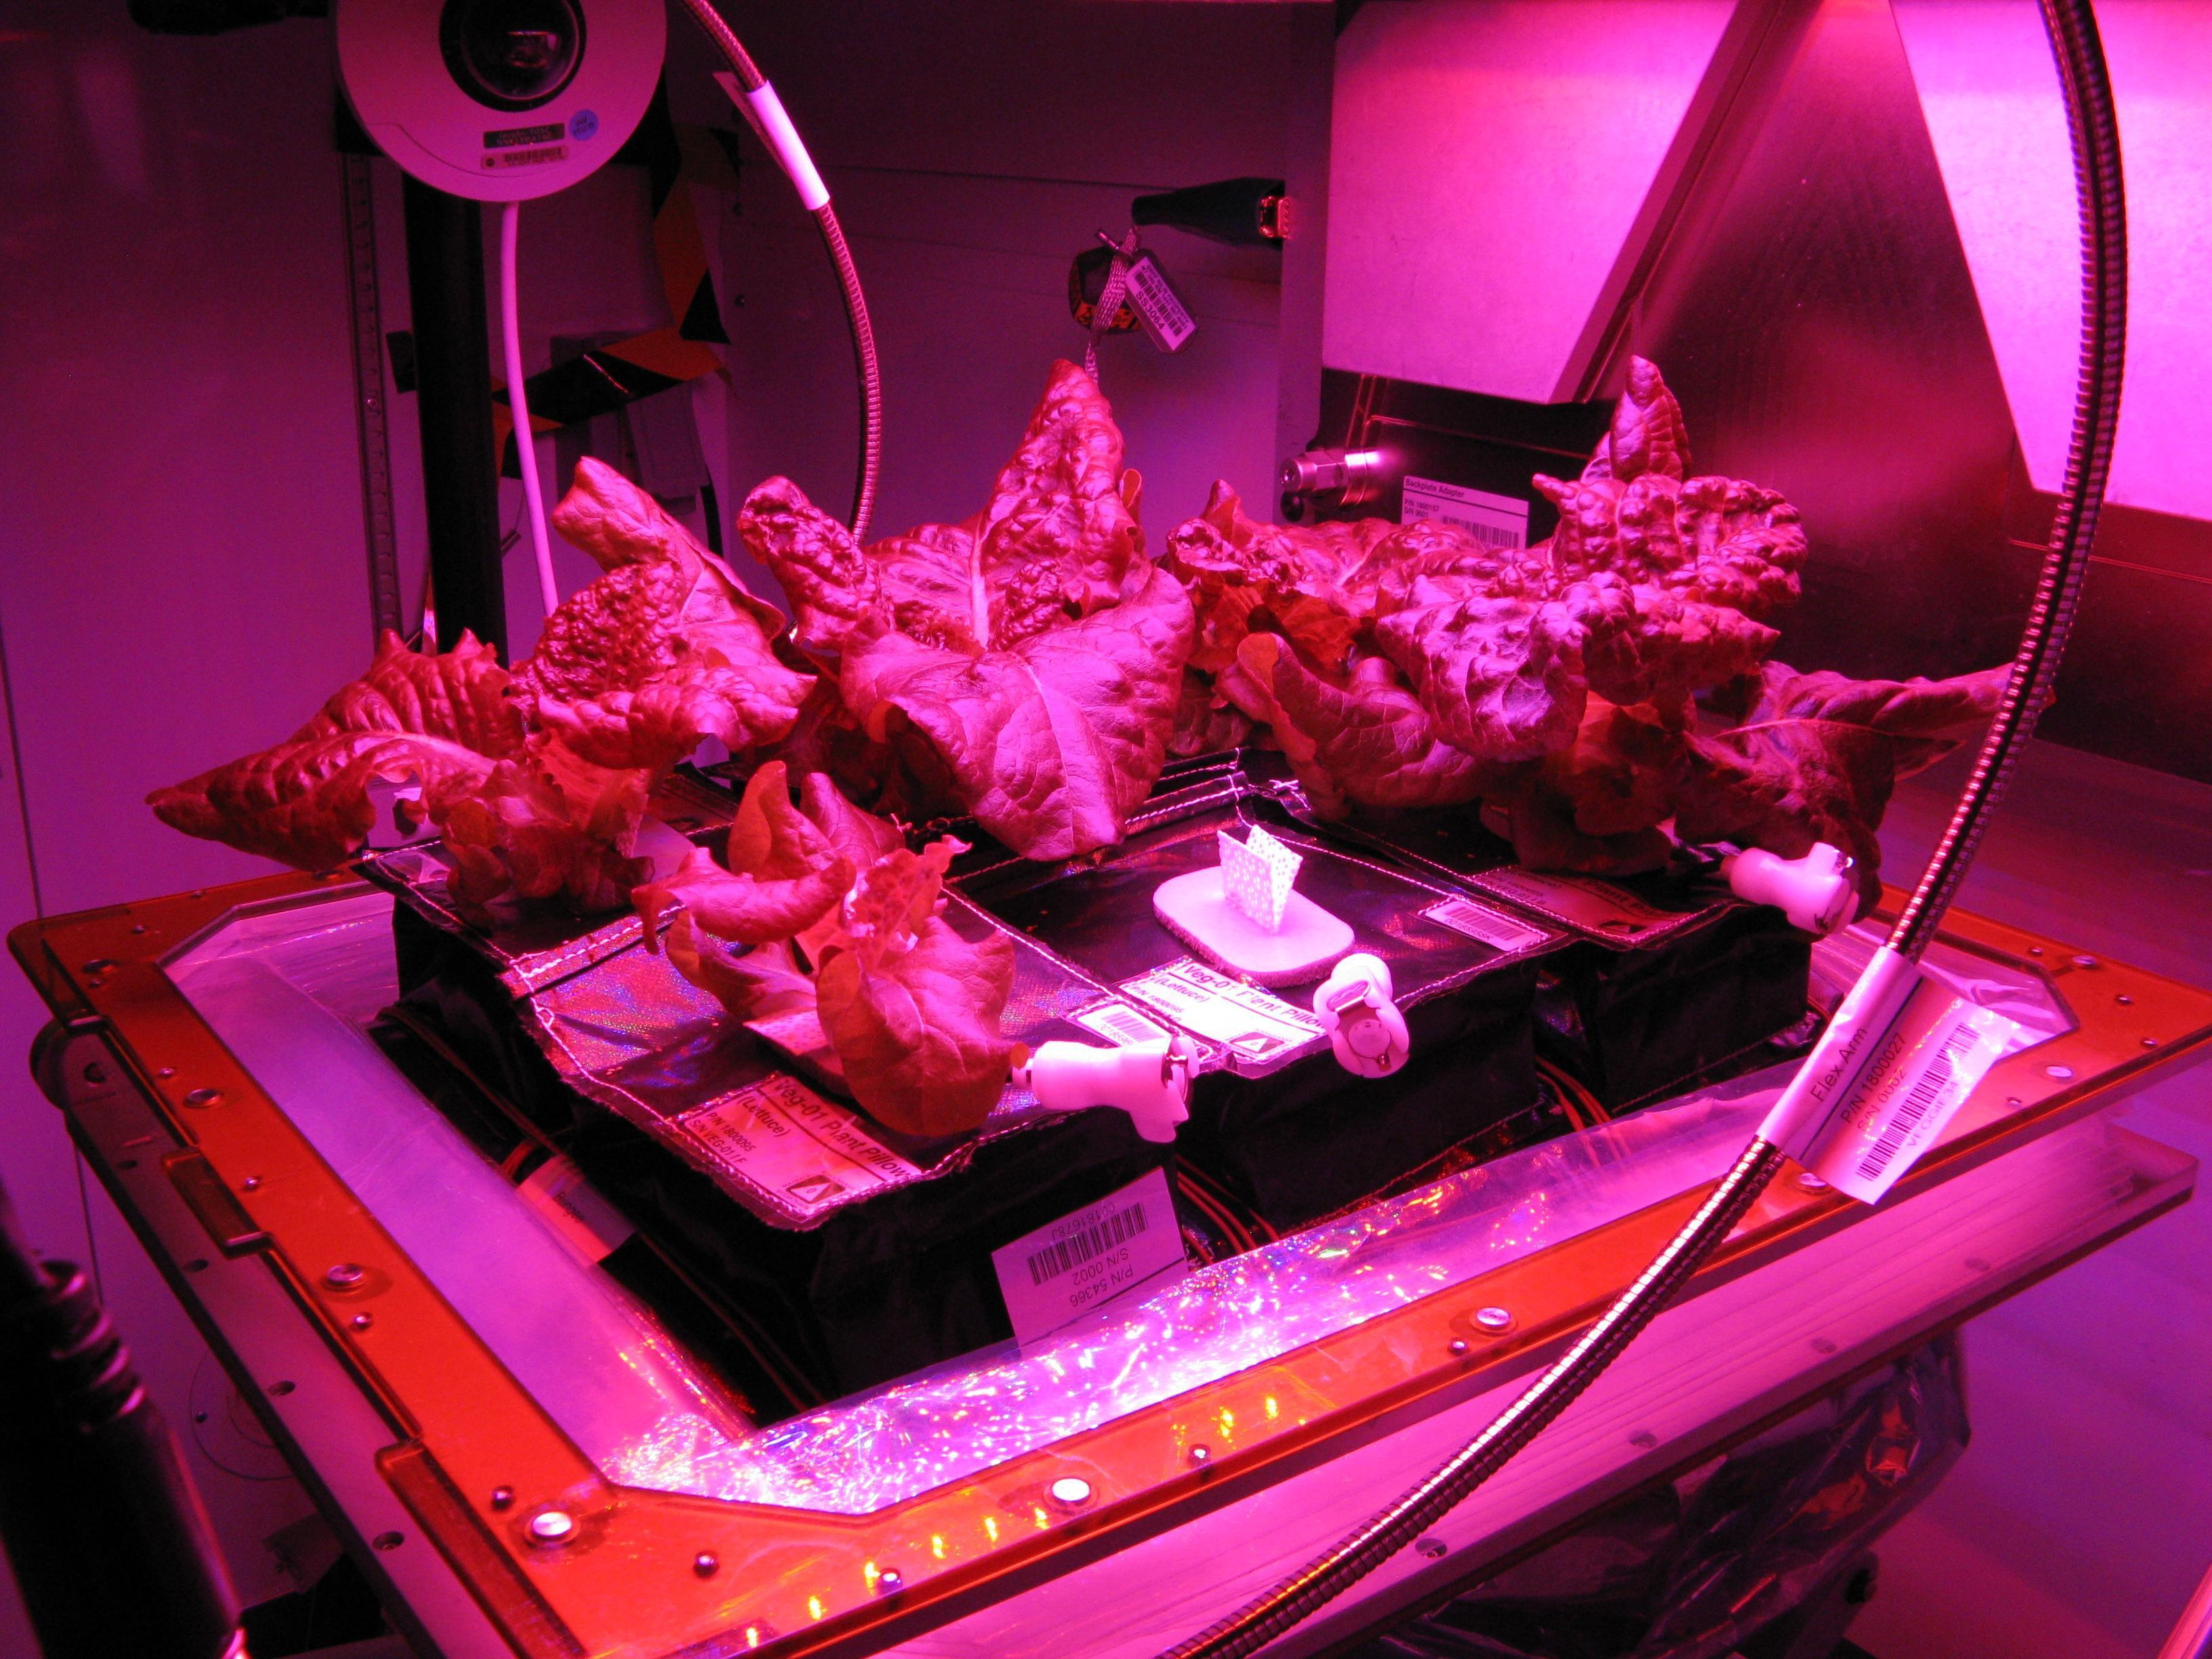 space farming yields a crop of benefits for earth nasa growing plants